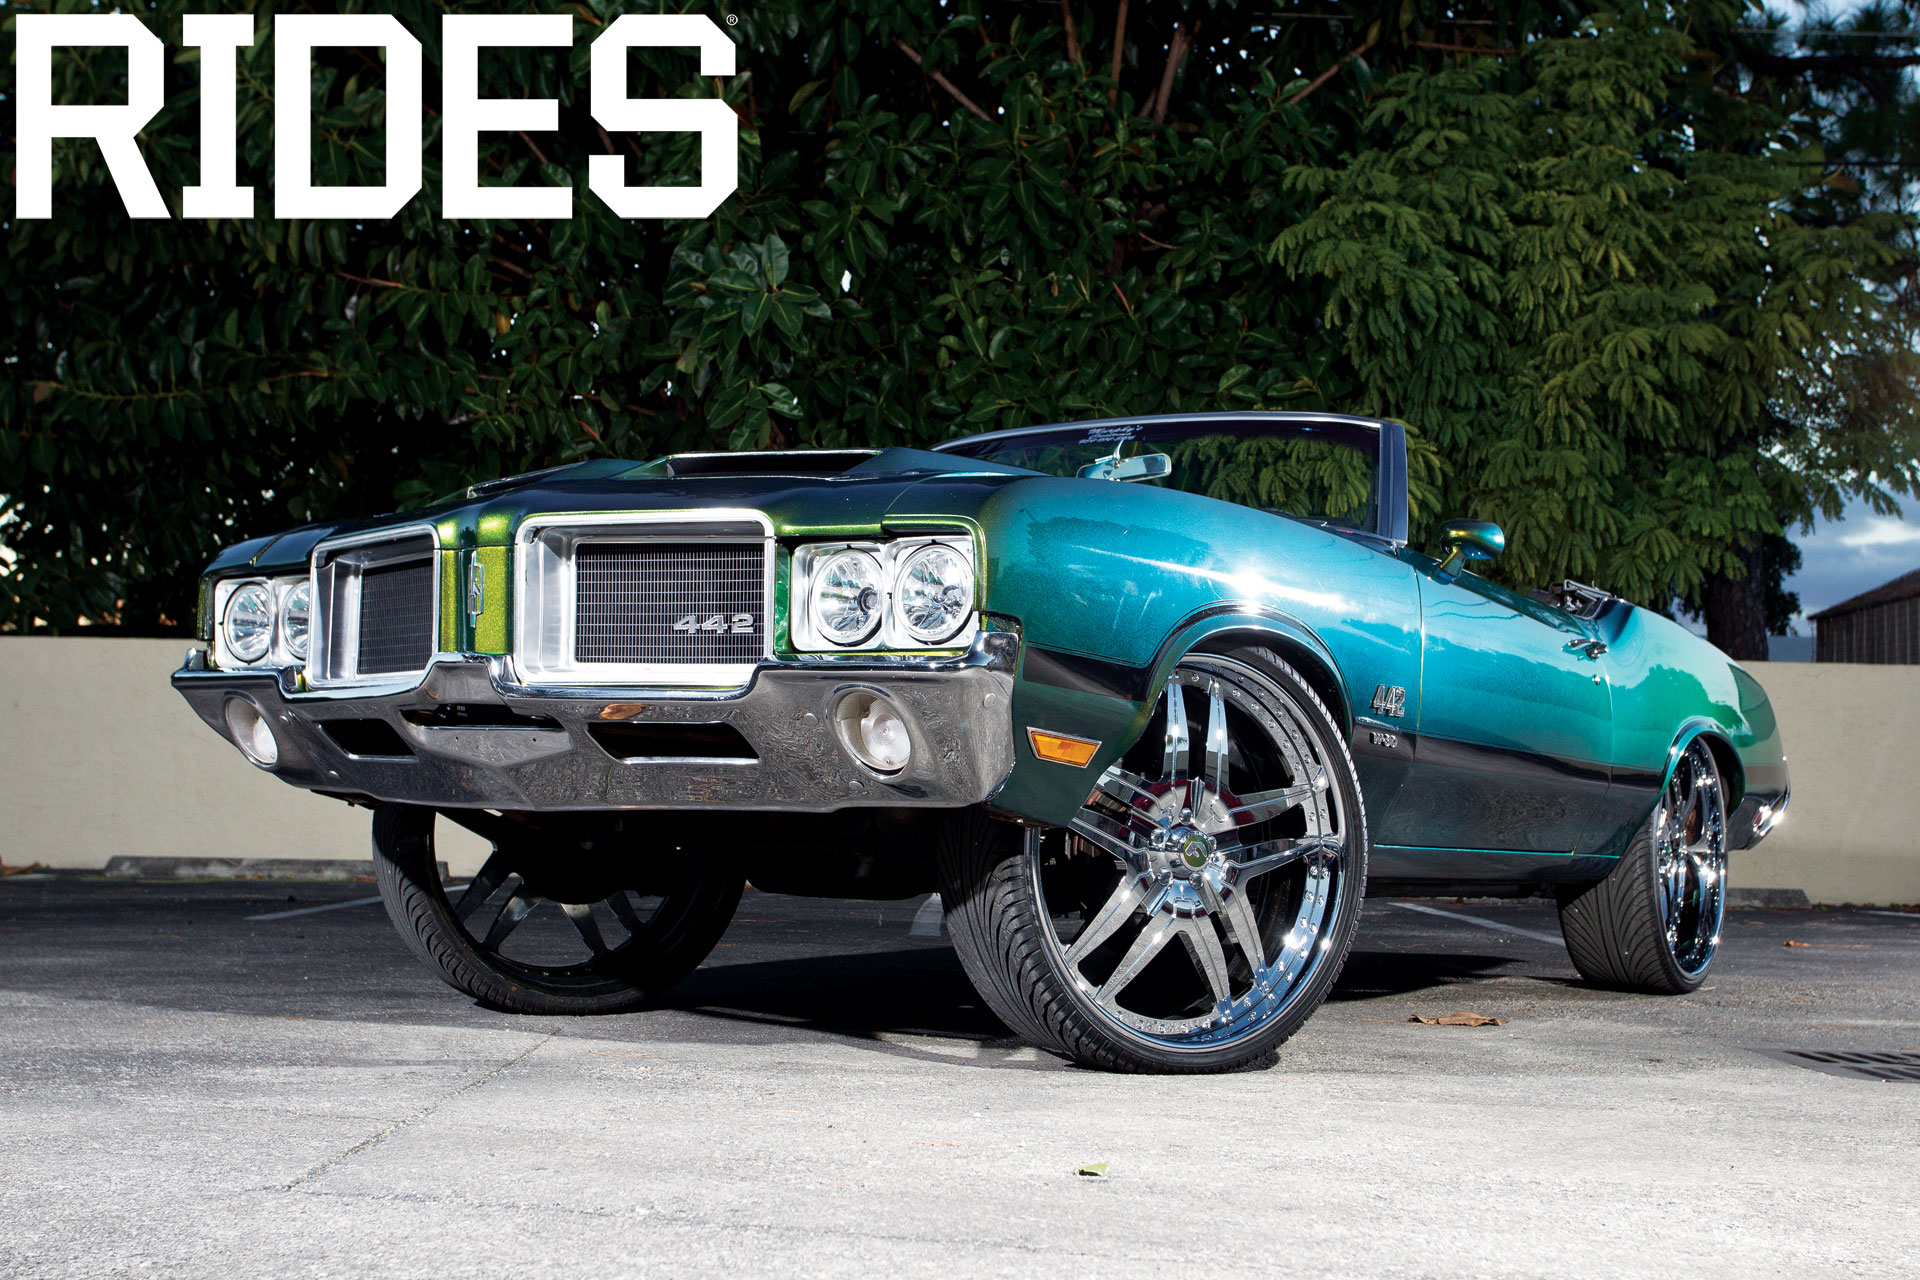 rides cars 71 olds cutty cutlass oldsmobile 442 wallpaper donk